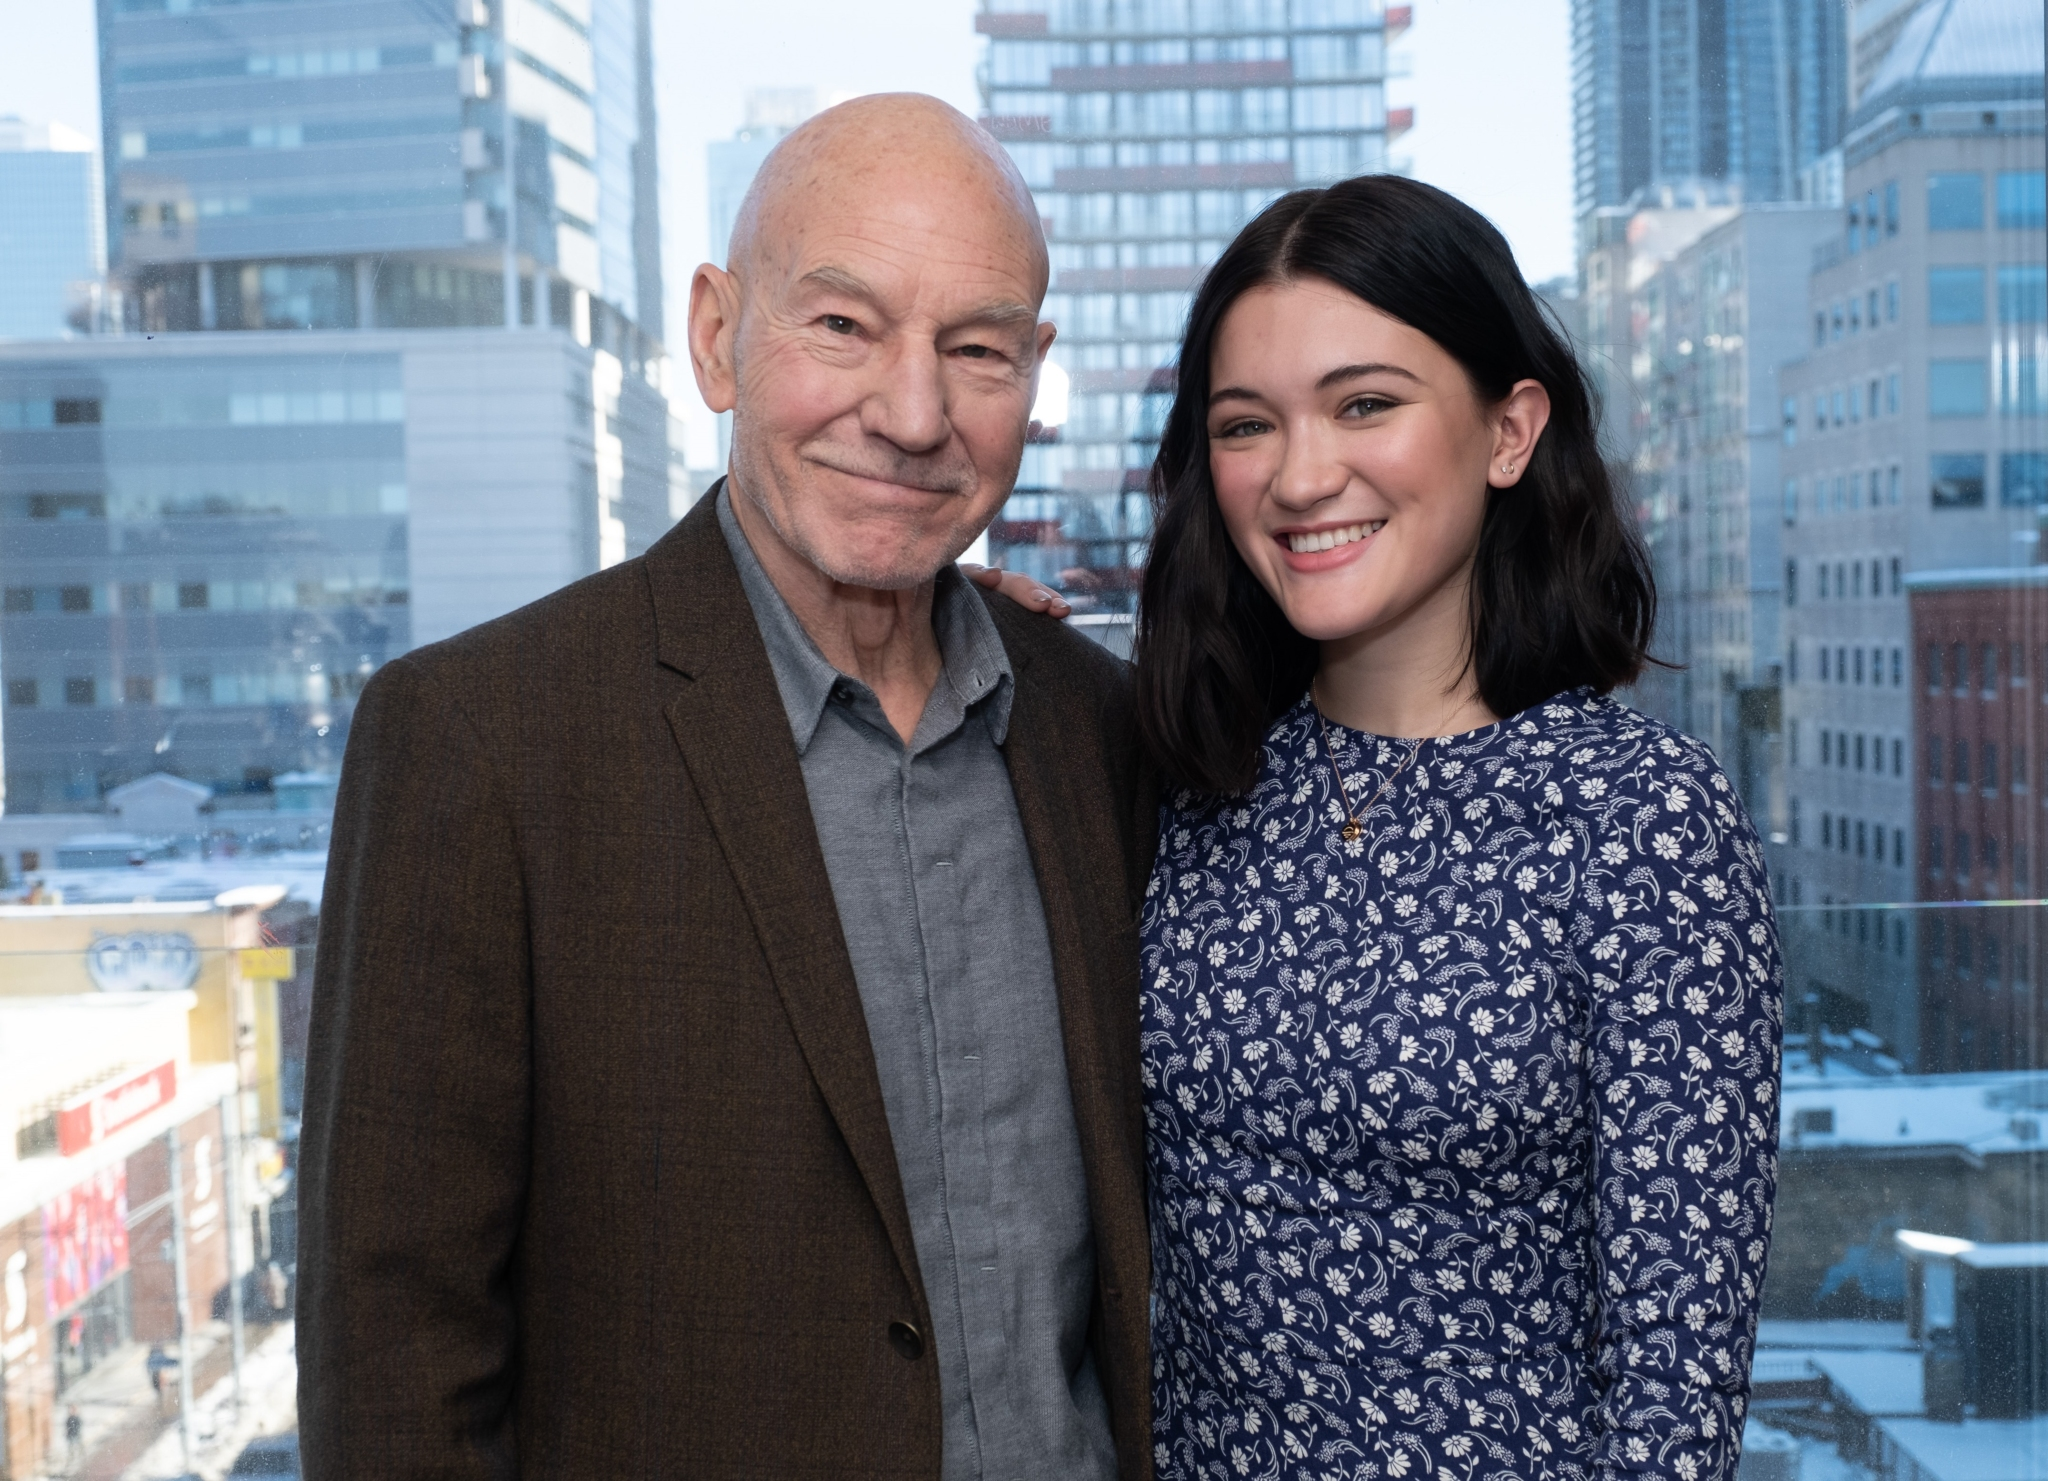 Sir Patrick Stewart and Isa Briones Pump Up Bell Media Studios for the Highly Anticipated Debut of STAR TREK: PICARD